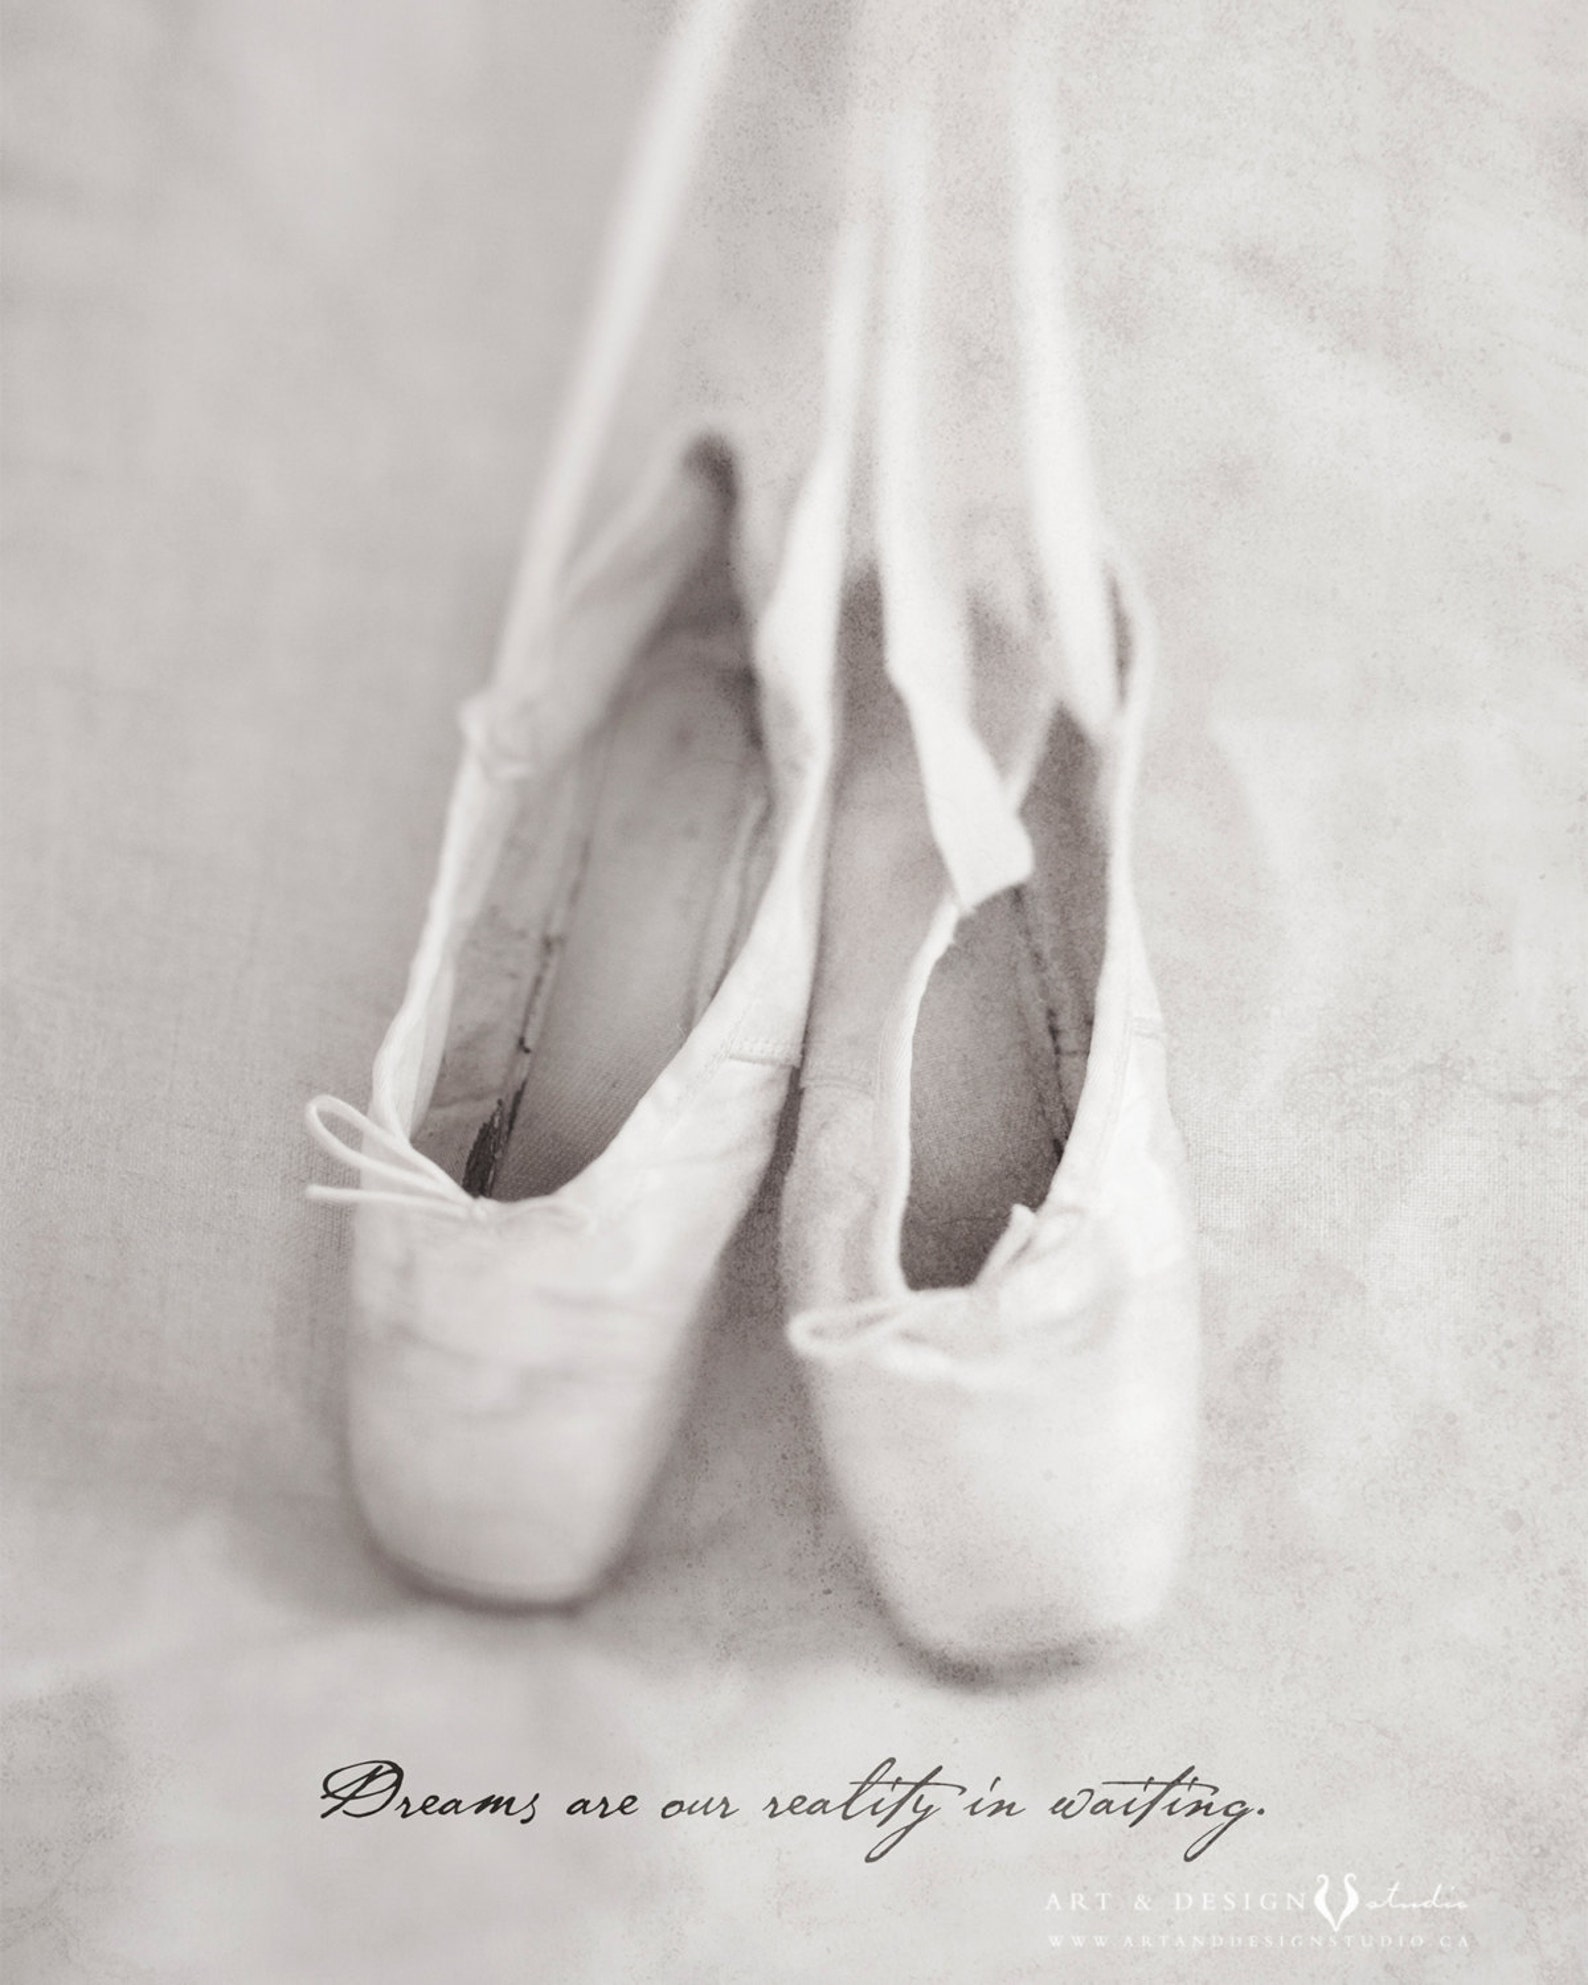 ballet pointe shoe photo fine art print with inspirational quote, home decor for the ballerina dancer, dance art, pink ballet sh